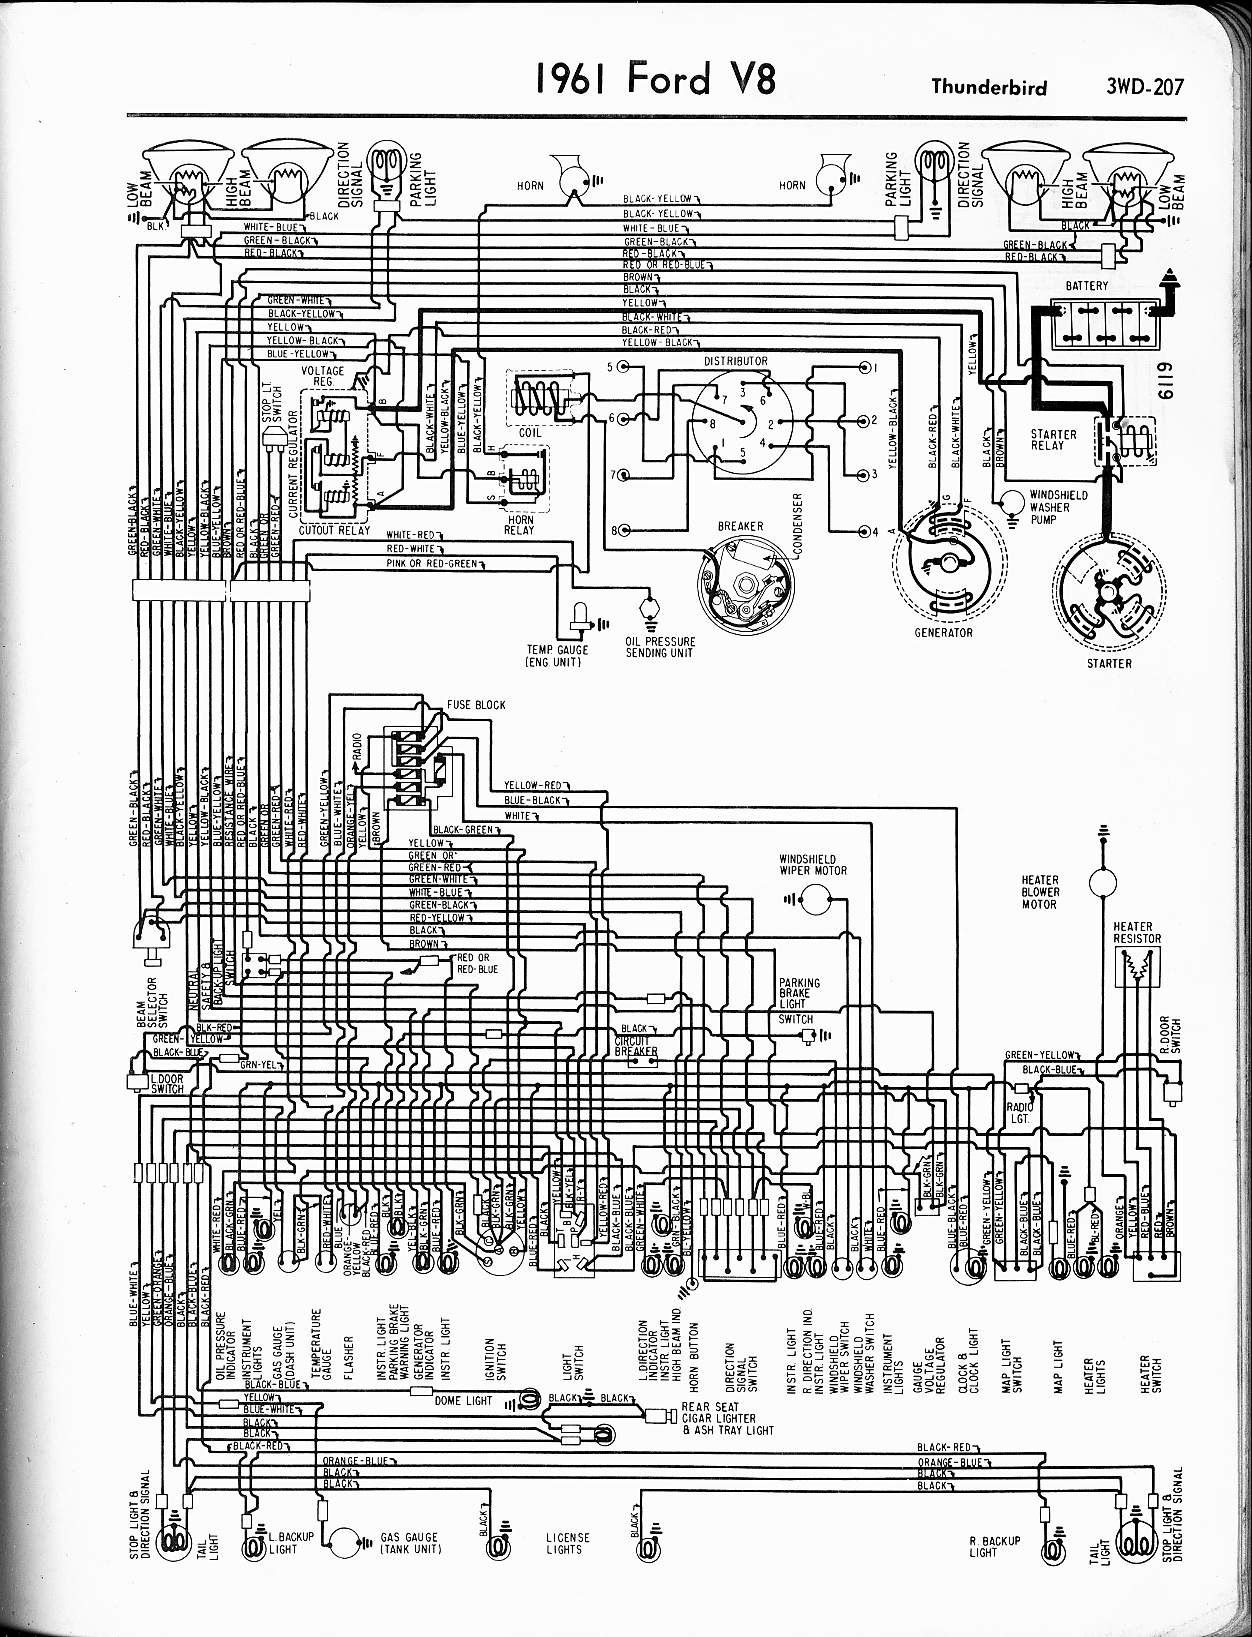 1980 Ford Thunderbird Wiring Diagram Starting Know About Nicor Exit Sign 1966 Pick Up Heater Simple Rh David Huggett Co Uk